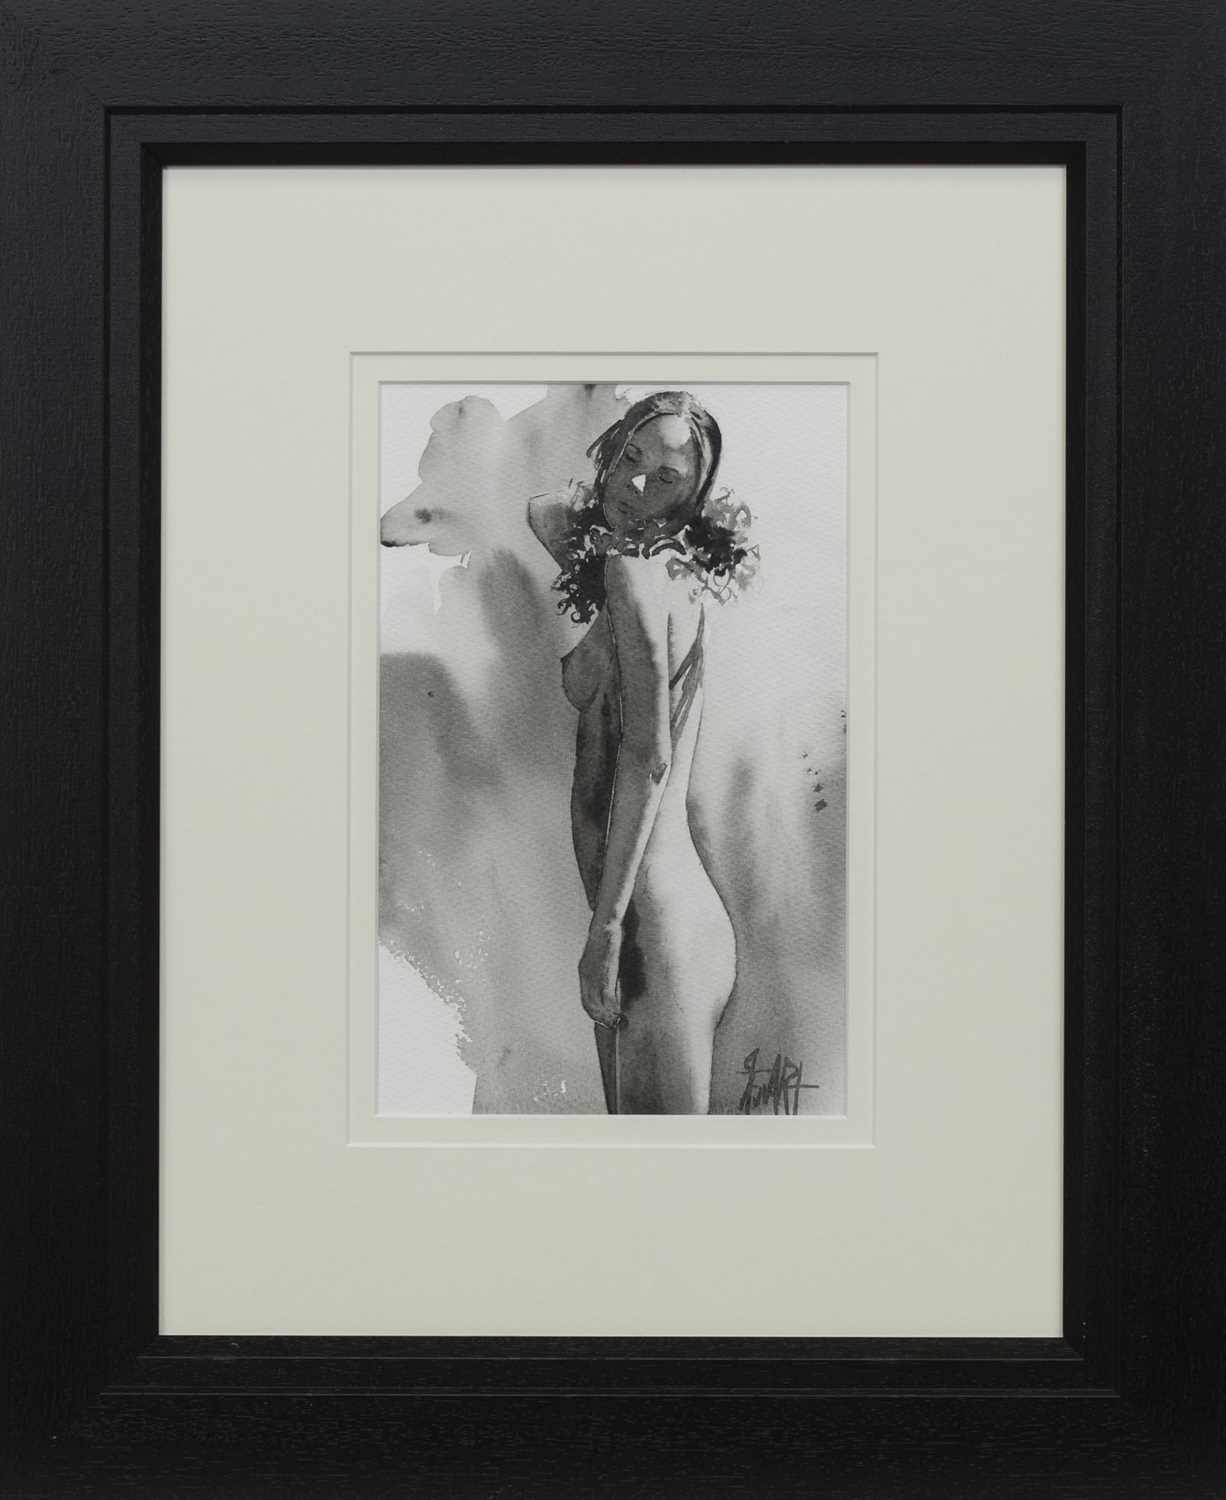 Lot 504 - NUDE STUDY, A WATERCOLOUR BY LEE STEWART